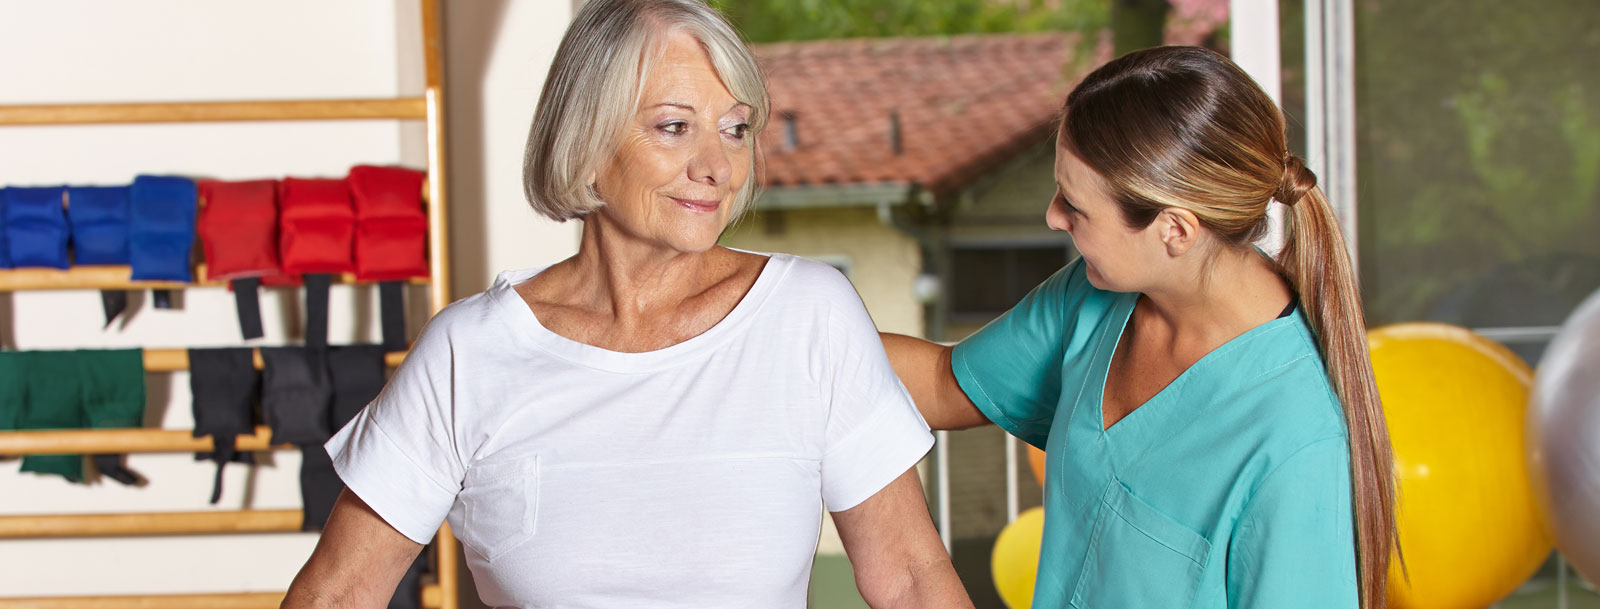 Orthopedic services at the senior living facility in Wichita